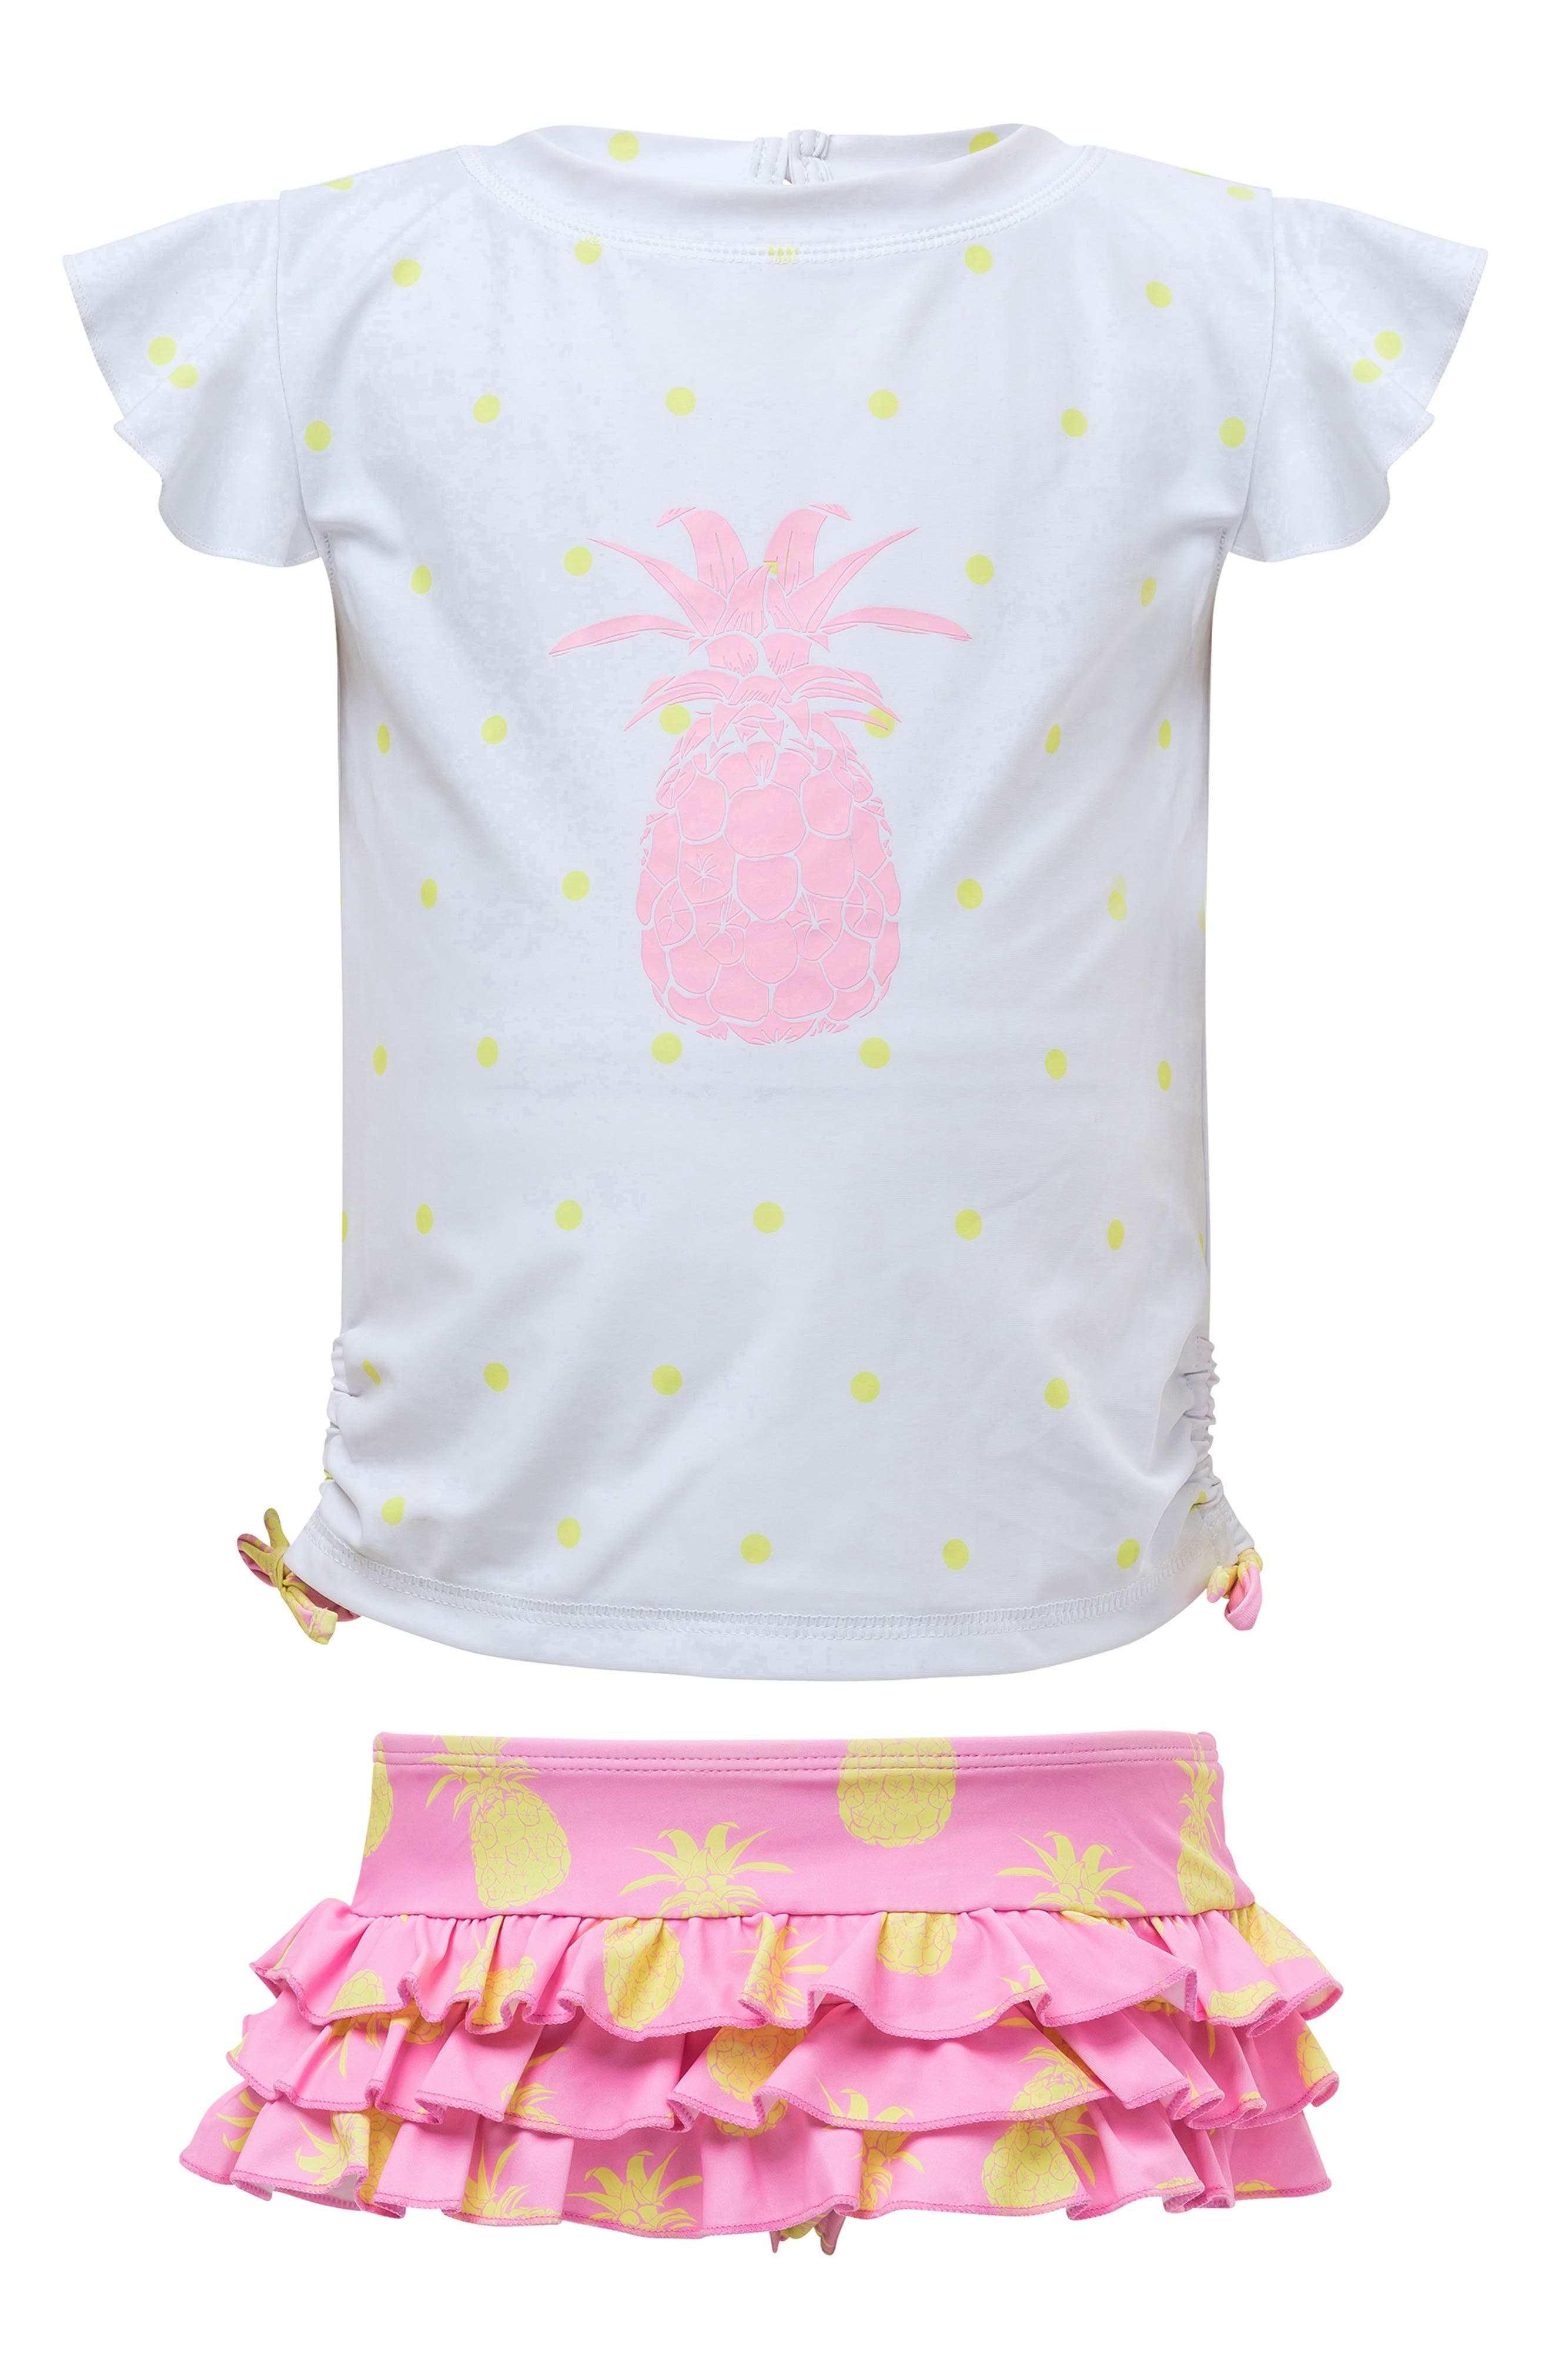 Pineapple Two-Piece Short Sleeve Ruffle Swimsuit, Main, color, PINK YELLOW PINEAPPLE